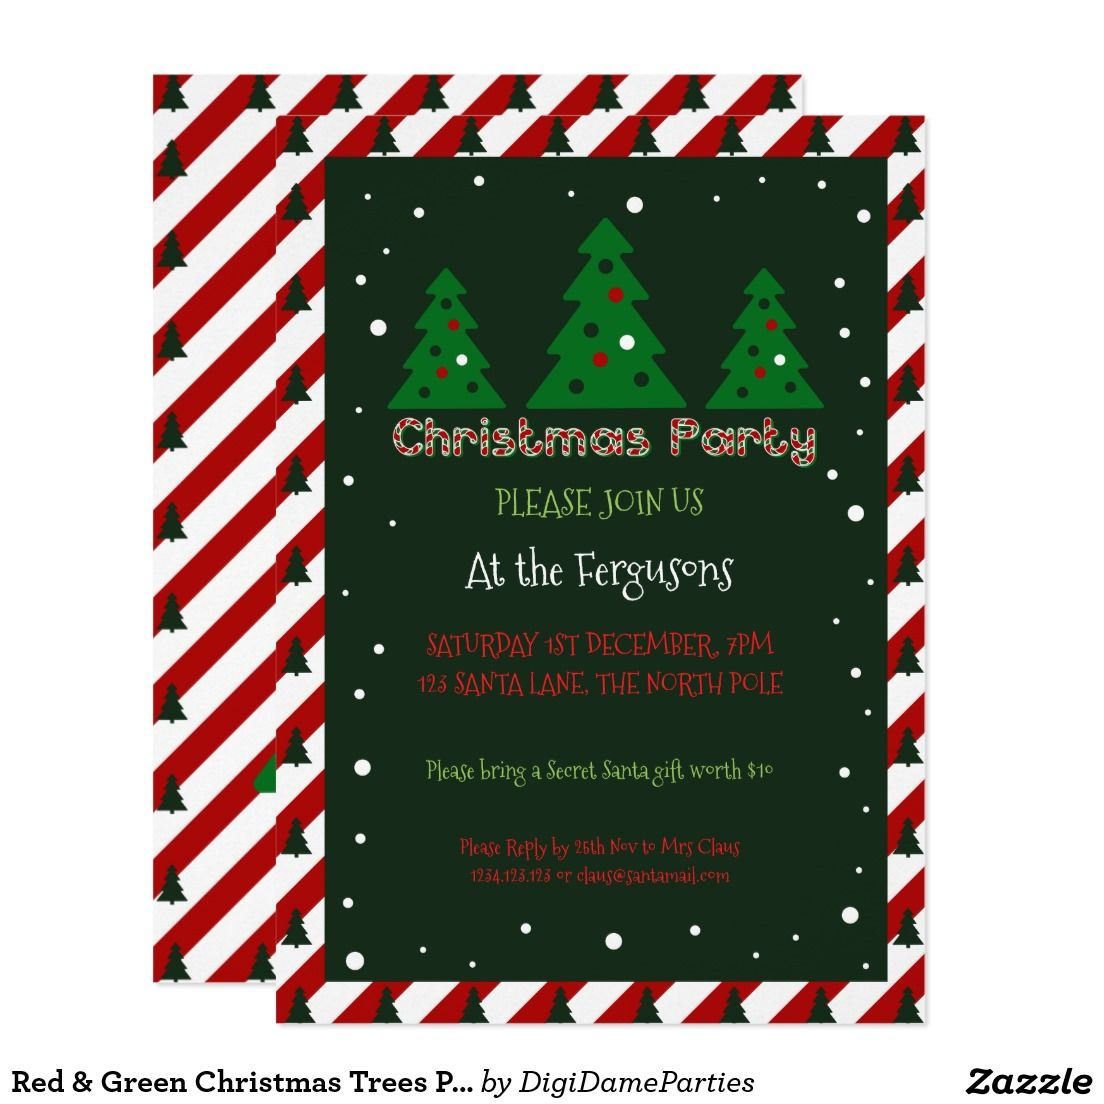 Red & Green Christmas Trees Party Invitation Template by The Digi Dame Parties on Zazzle www.zazzle.com/digidameparties*